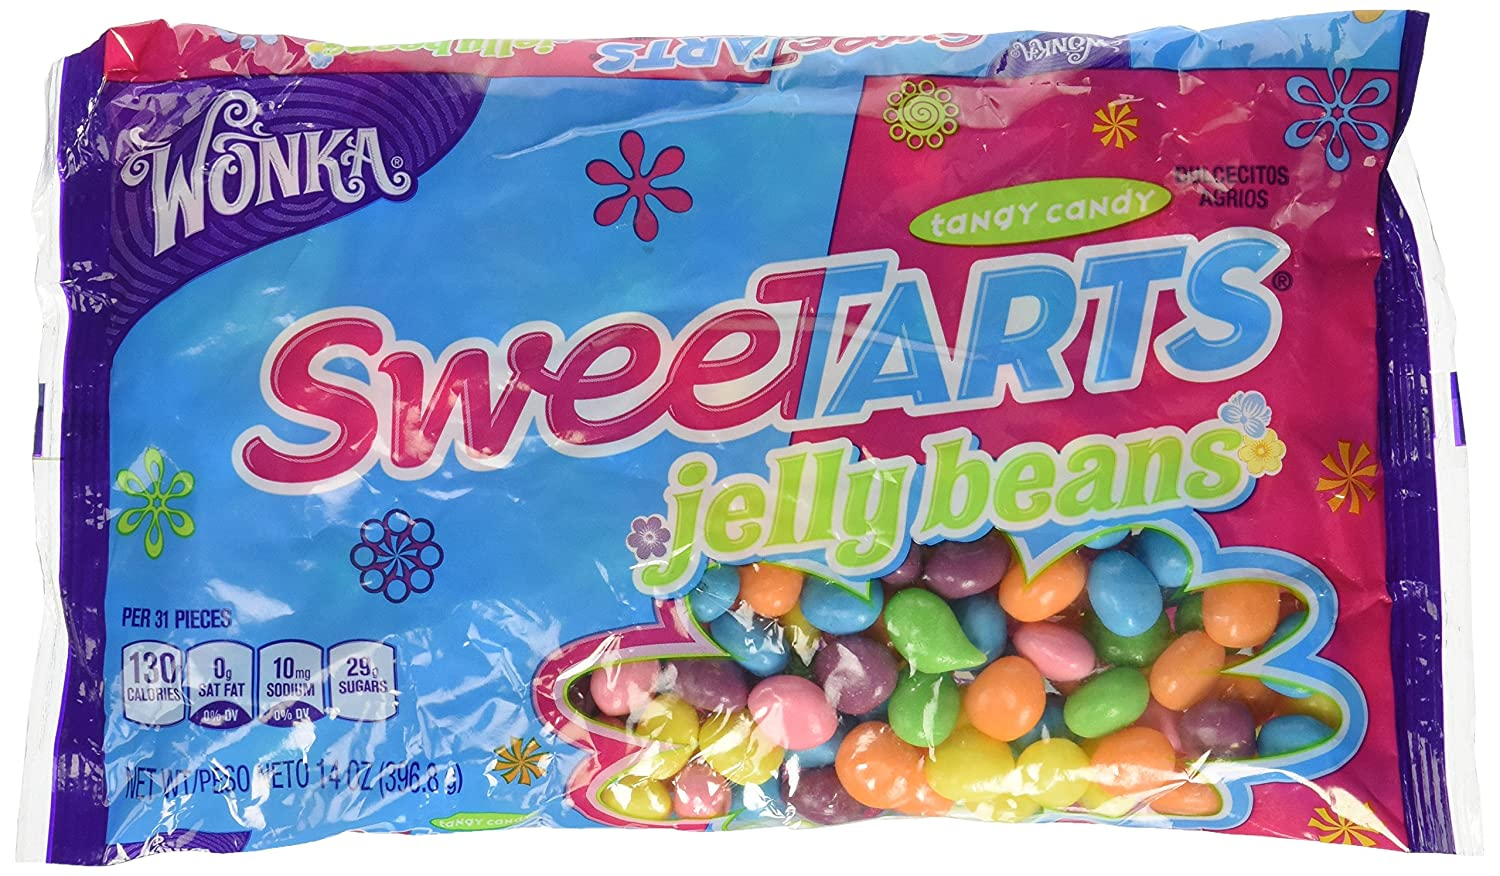 Amazon.com : Wonka Sweetarts Jelly Beans Easter Bag, 14-Ounce ...